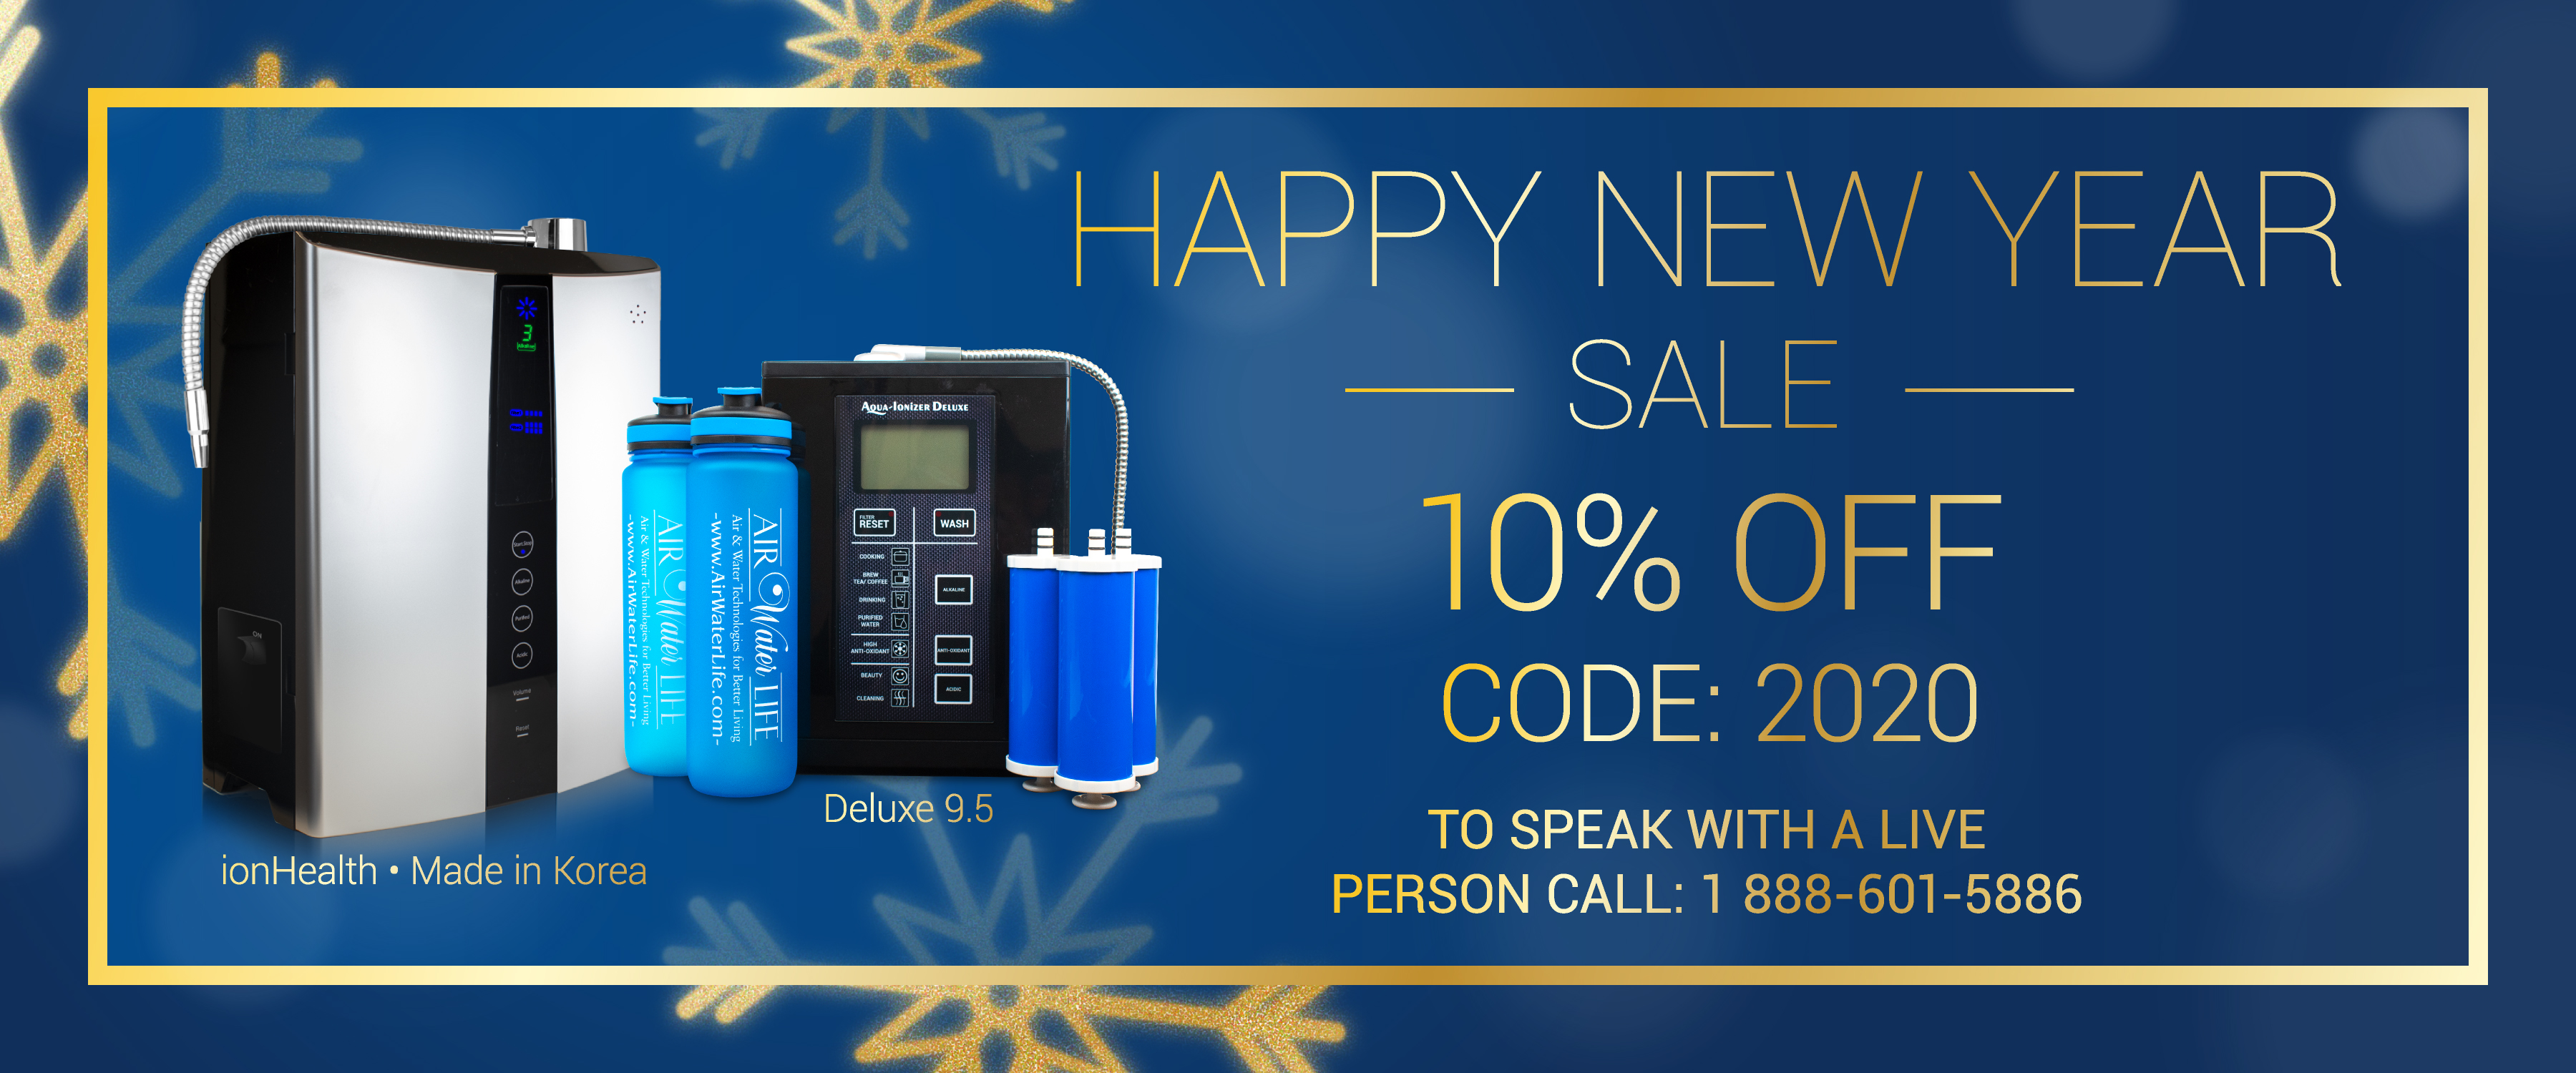 Air water life new year sales banner